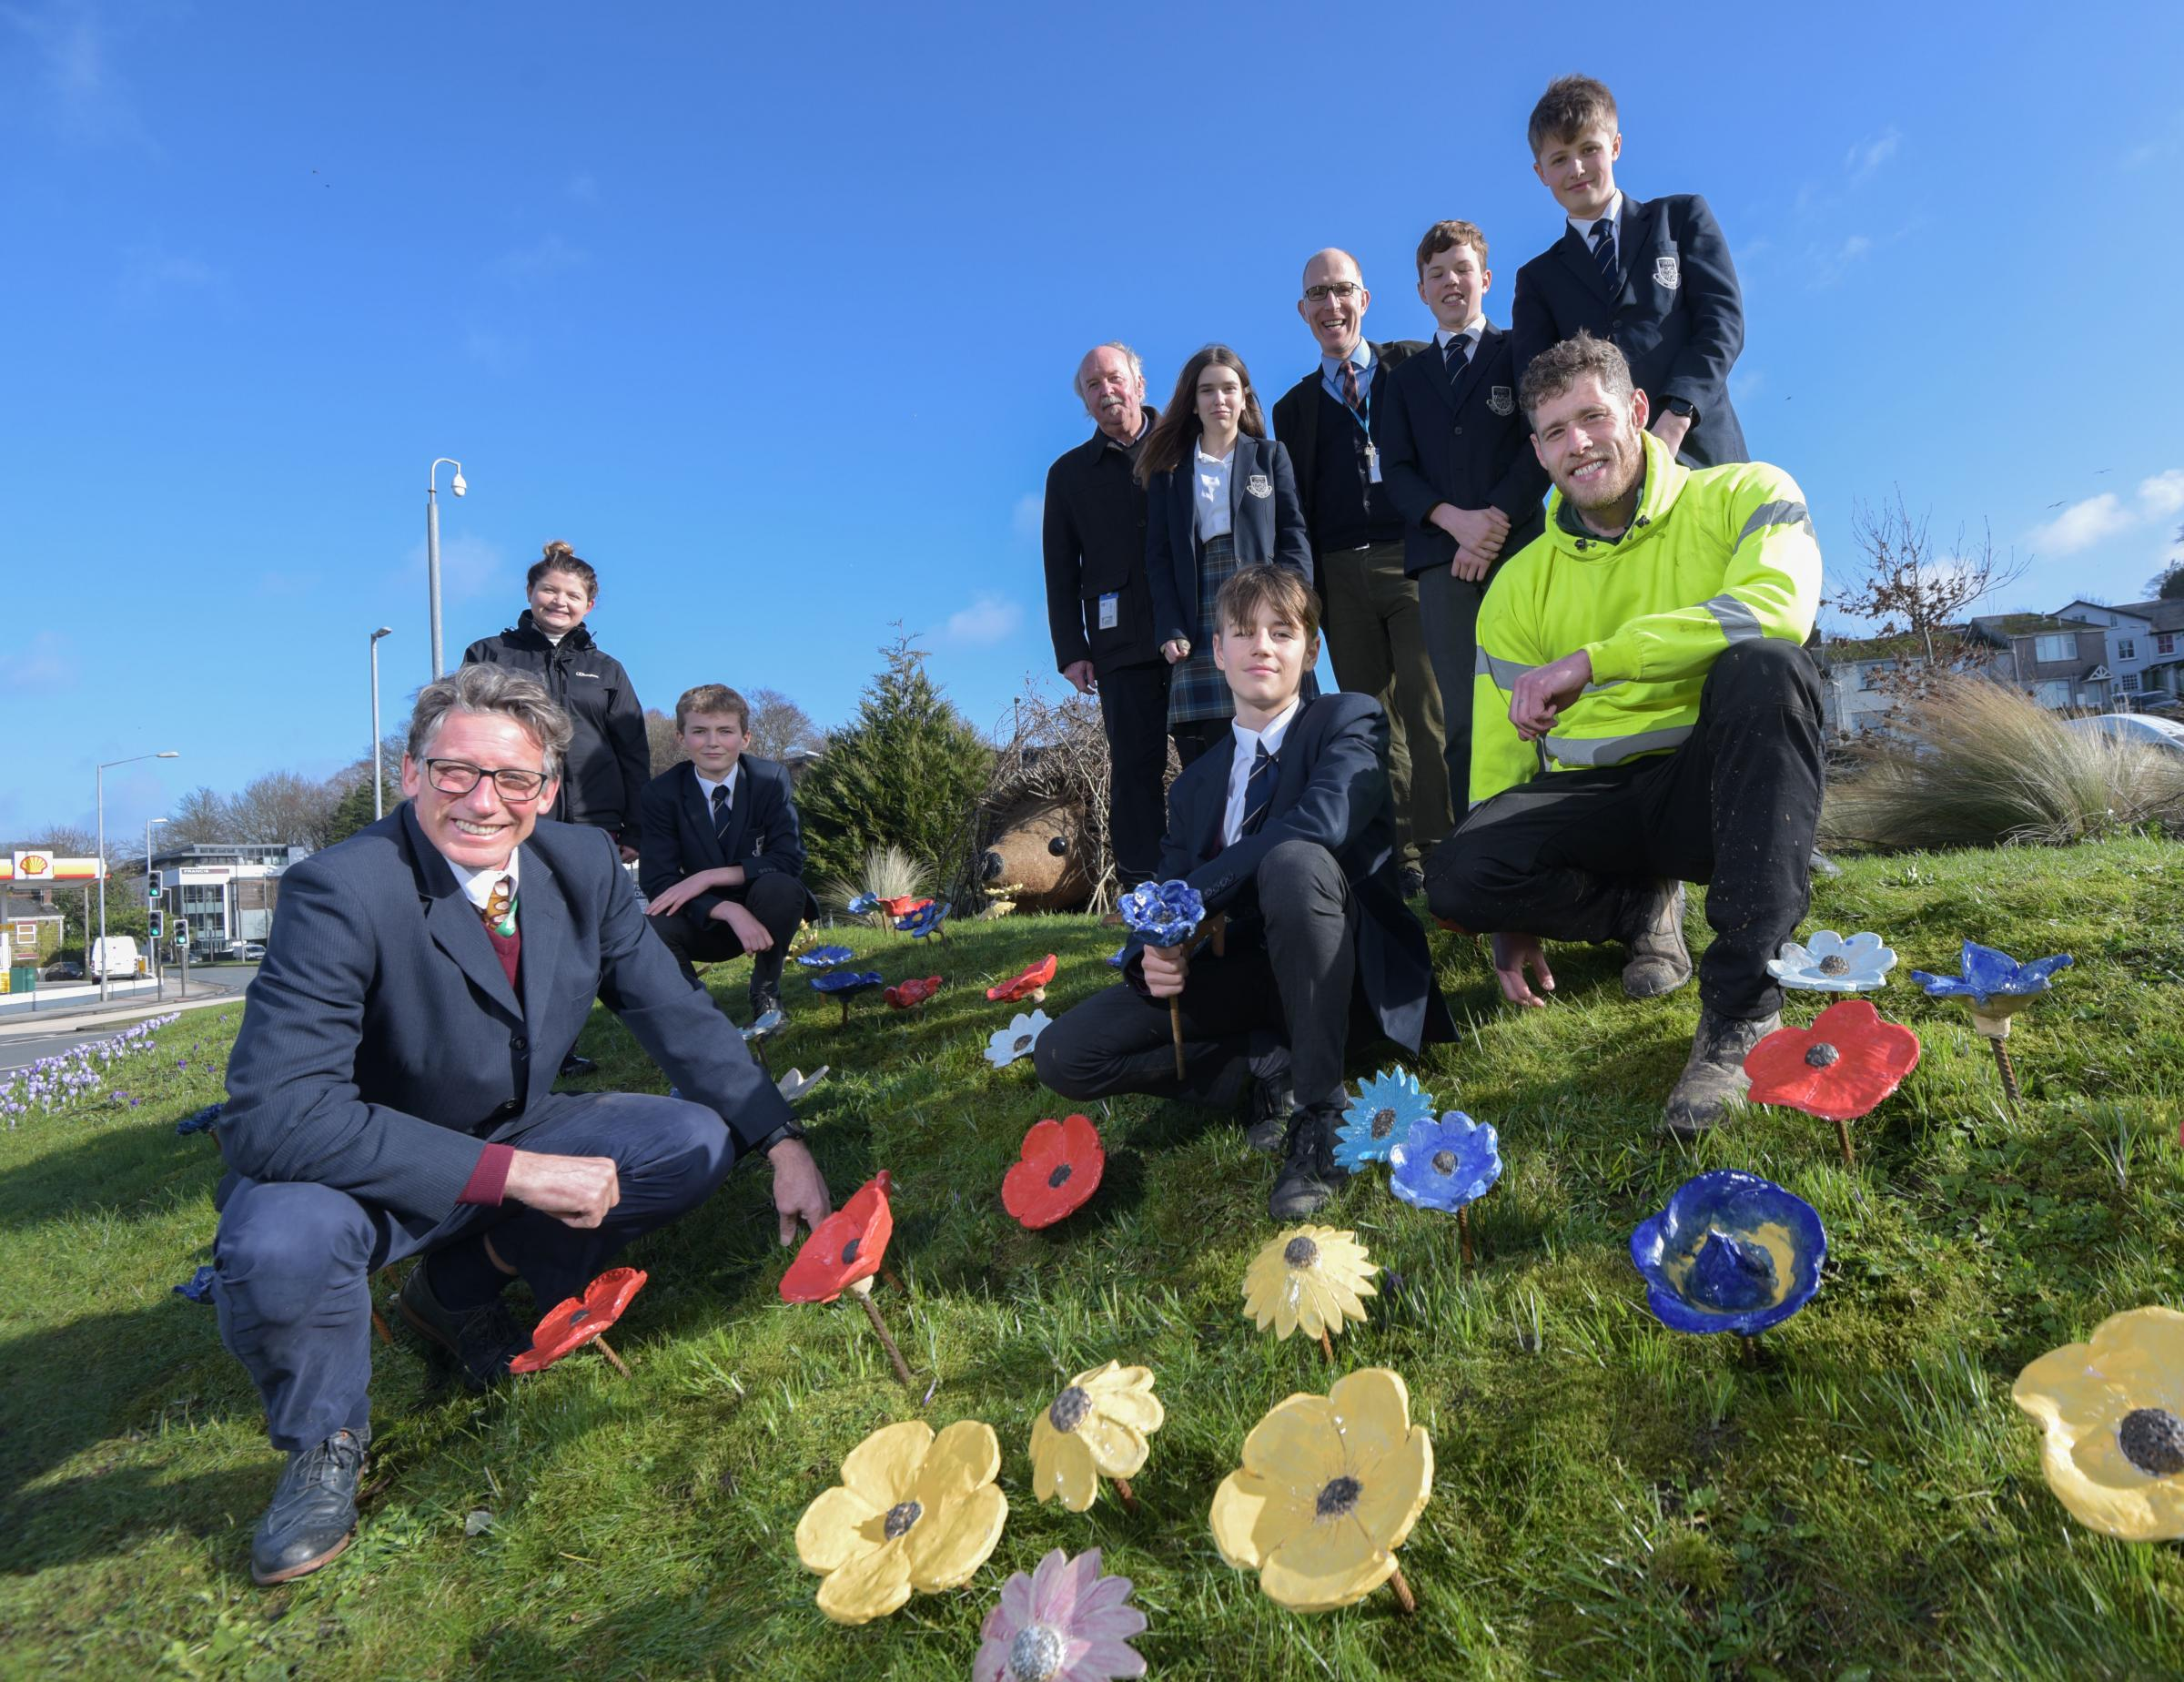 'Roundabout of the Year' welcomes explosion of colour